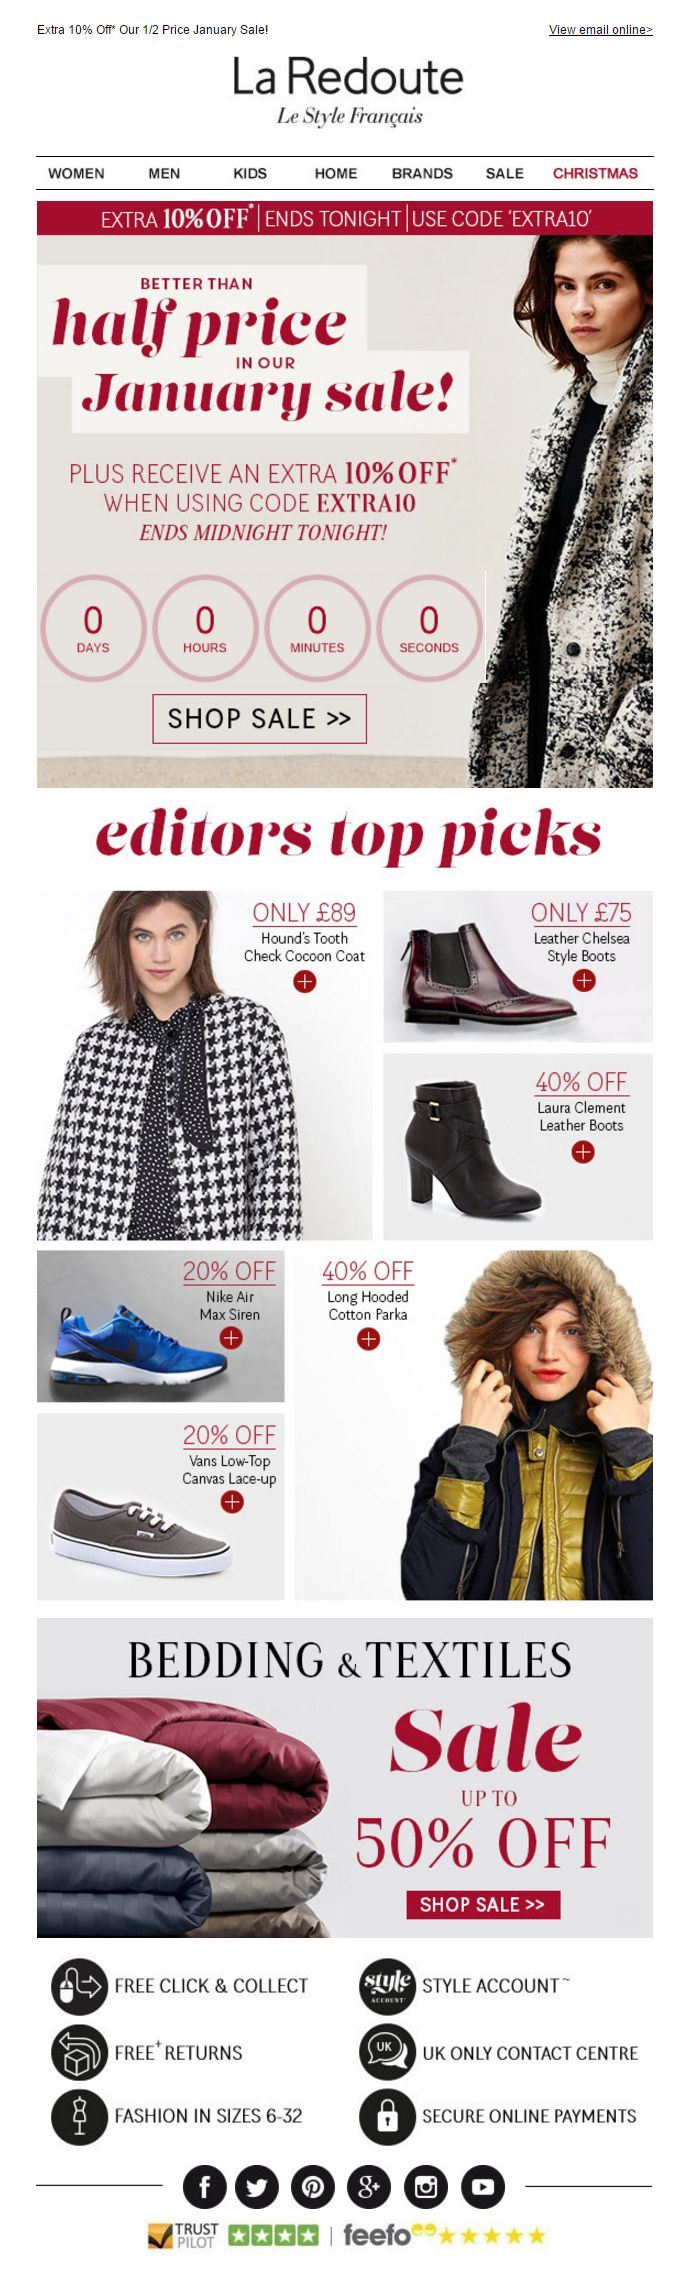 La Redoute Newsletter with Countdown to end of January Sales Coupon Code discount, plus product recommendations #EmailMarketing #CountdownTimer #Recommendations #Fashion